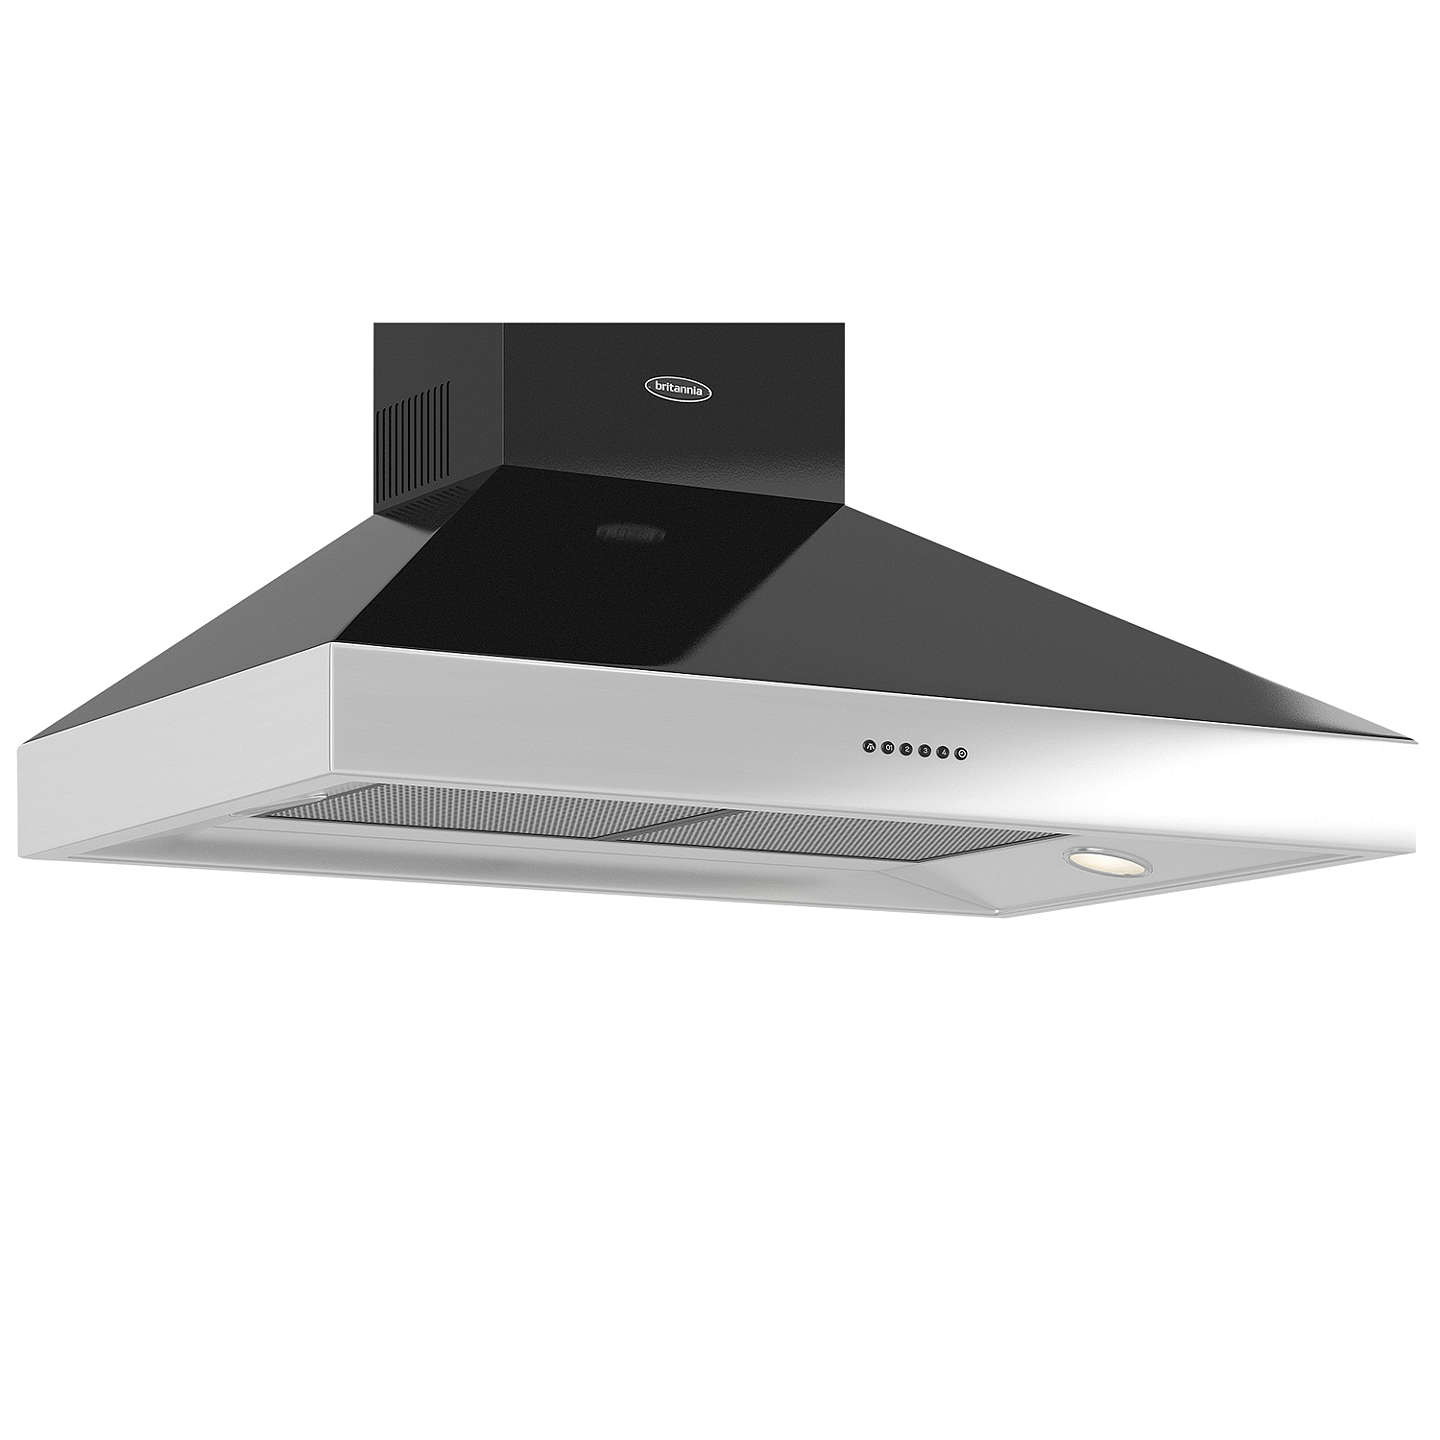 BuyBritannia HOOD-BTH90-GB Latour 2tone Chimney Cooker Hood, Black Gloss Online at johnlewis.com